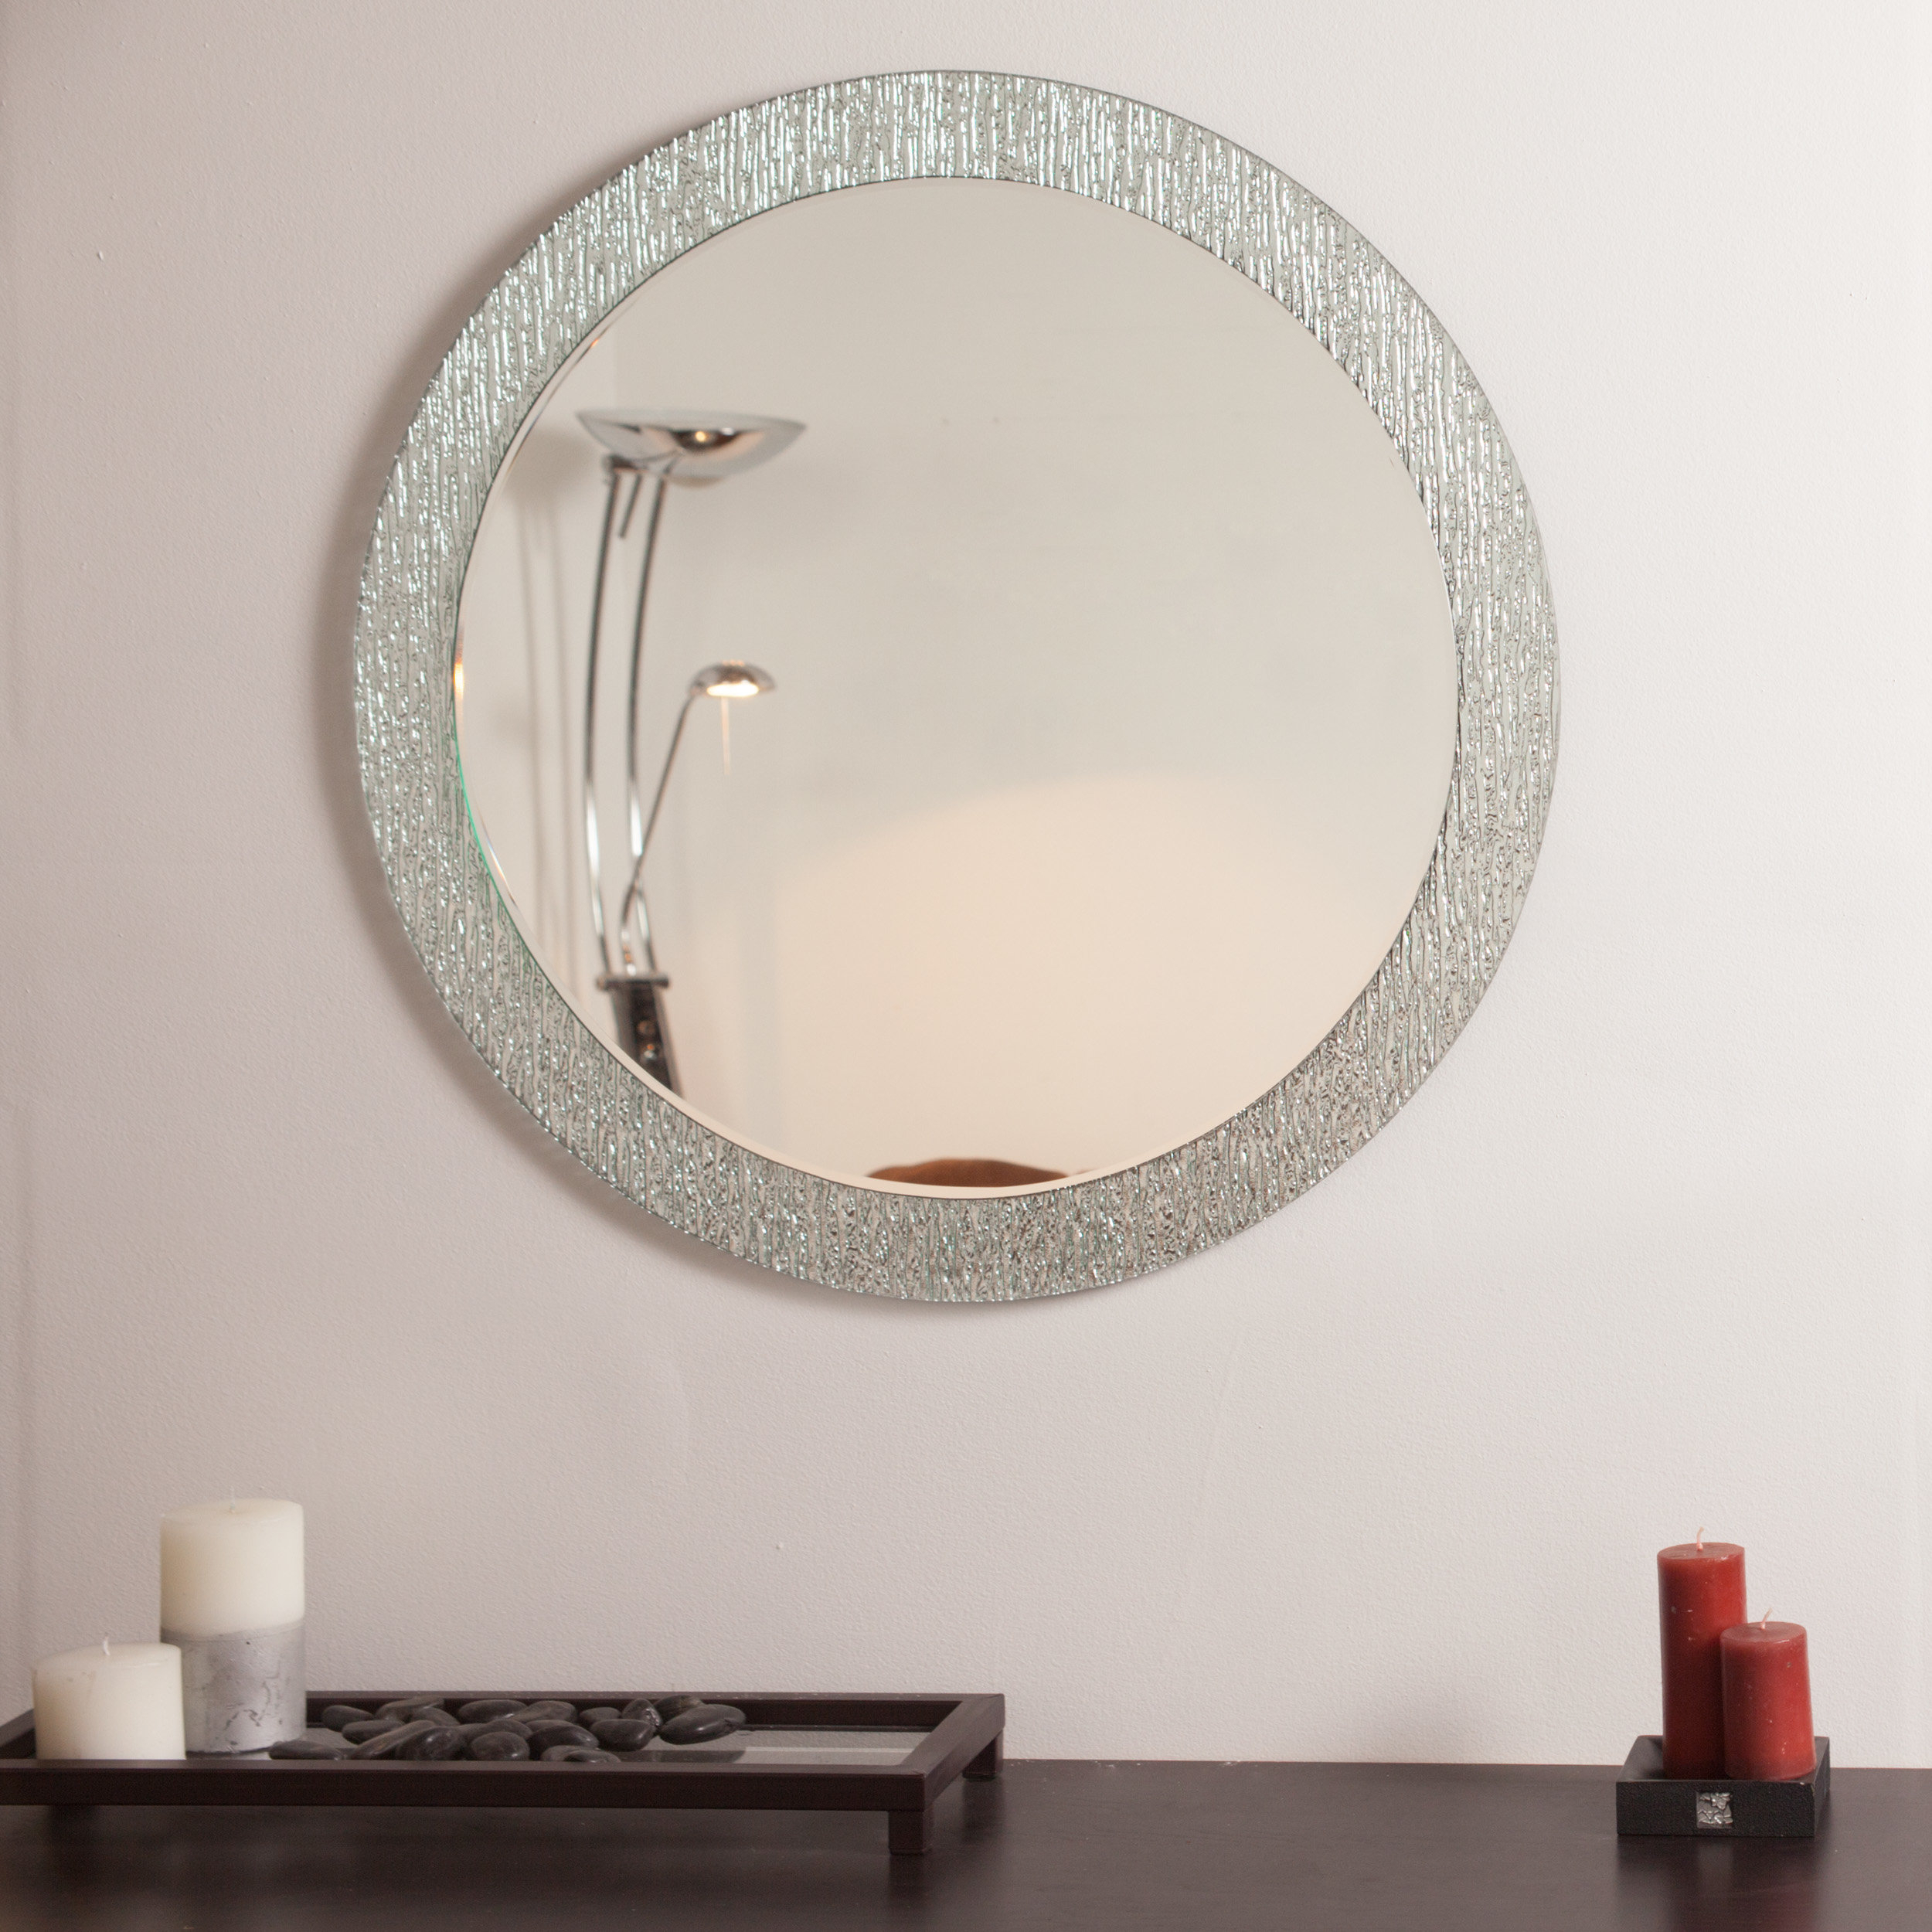 Point Reyes Molten Round Wall Mirror & Reviews | Joss & Main With Sajish Oval Crystal Wall Mirrors (View 17 of 20)